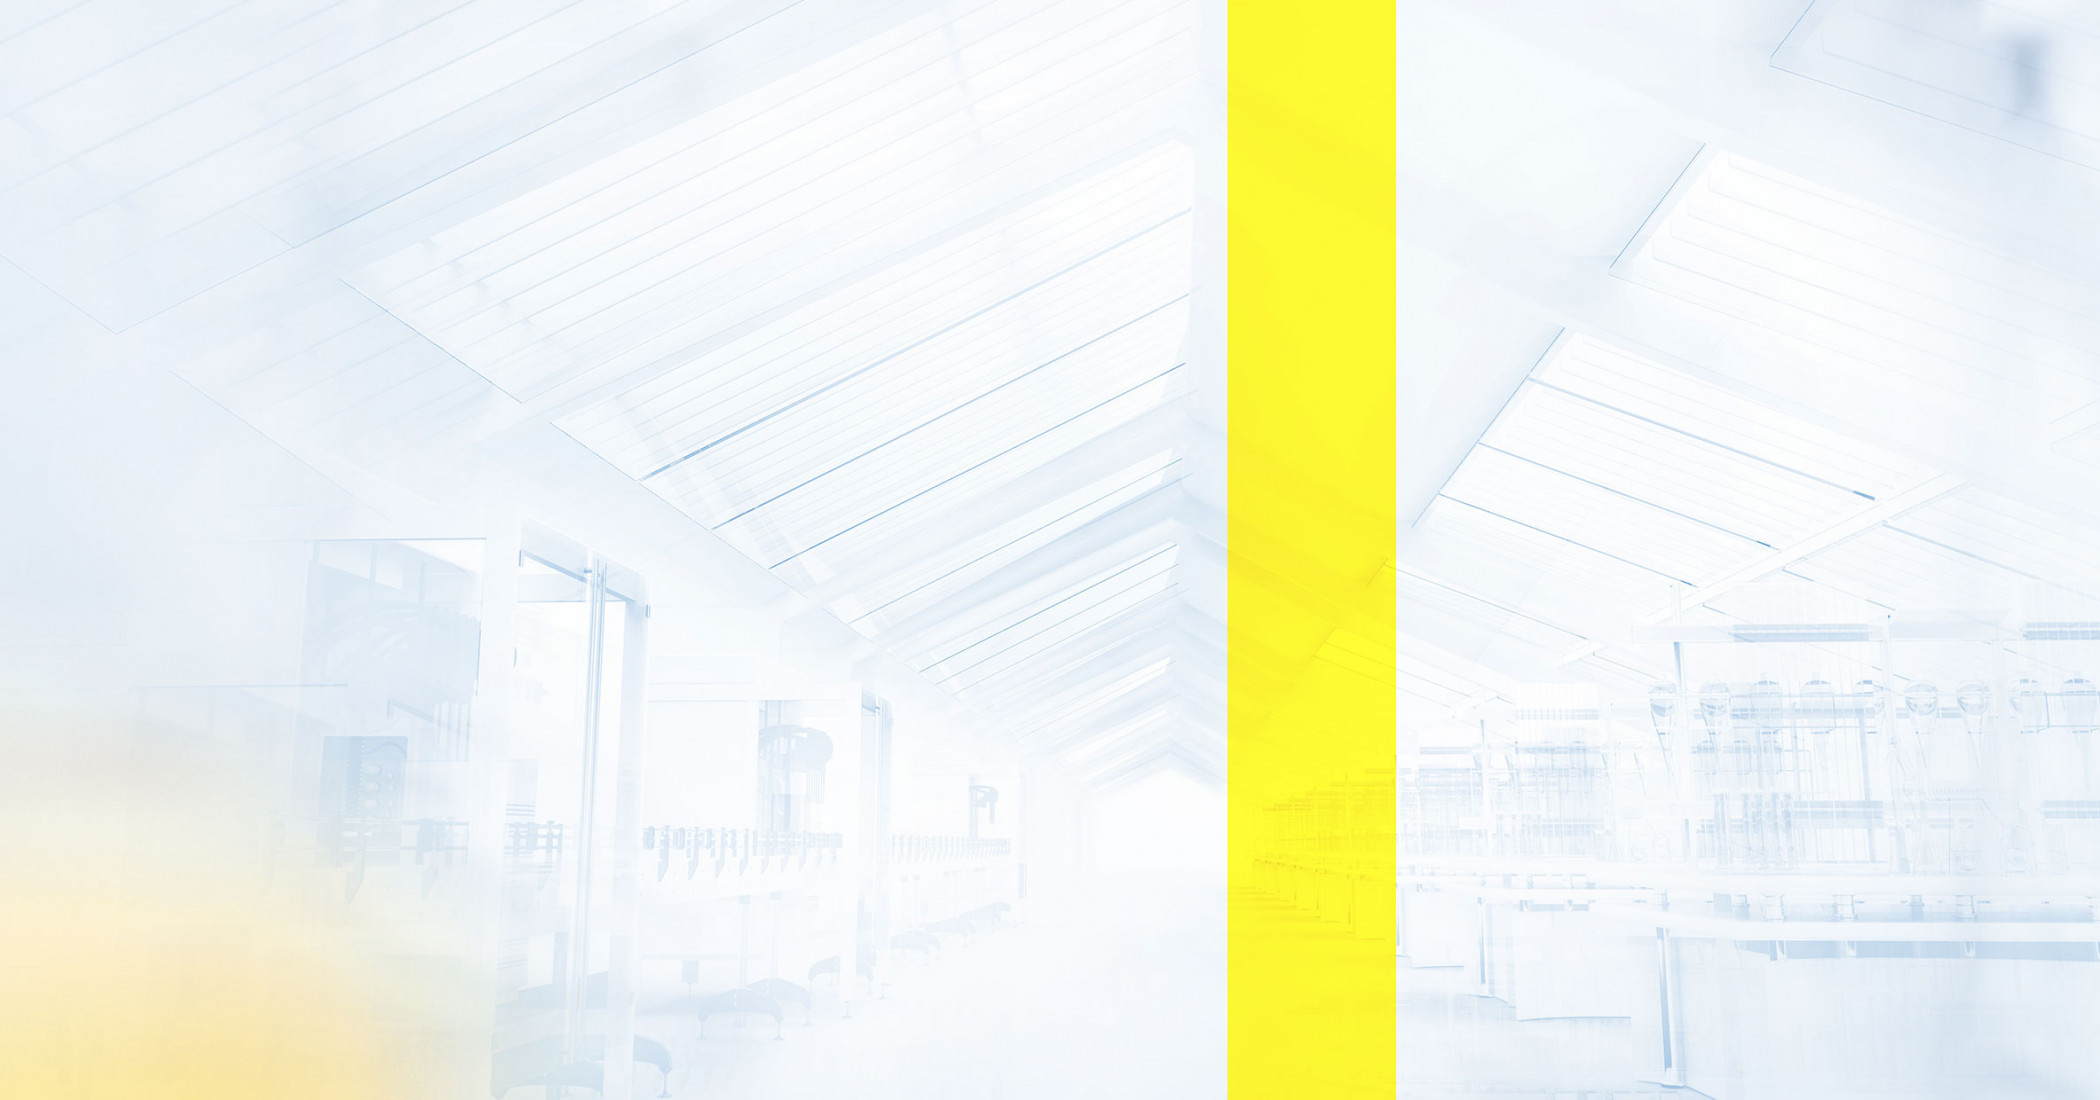 Poly-clip industry space with yellow line